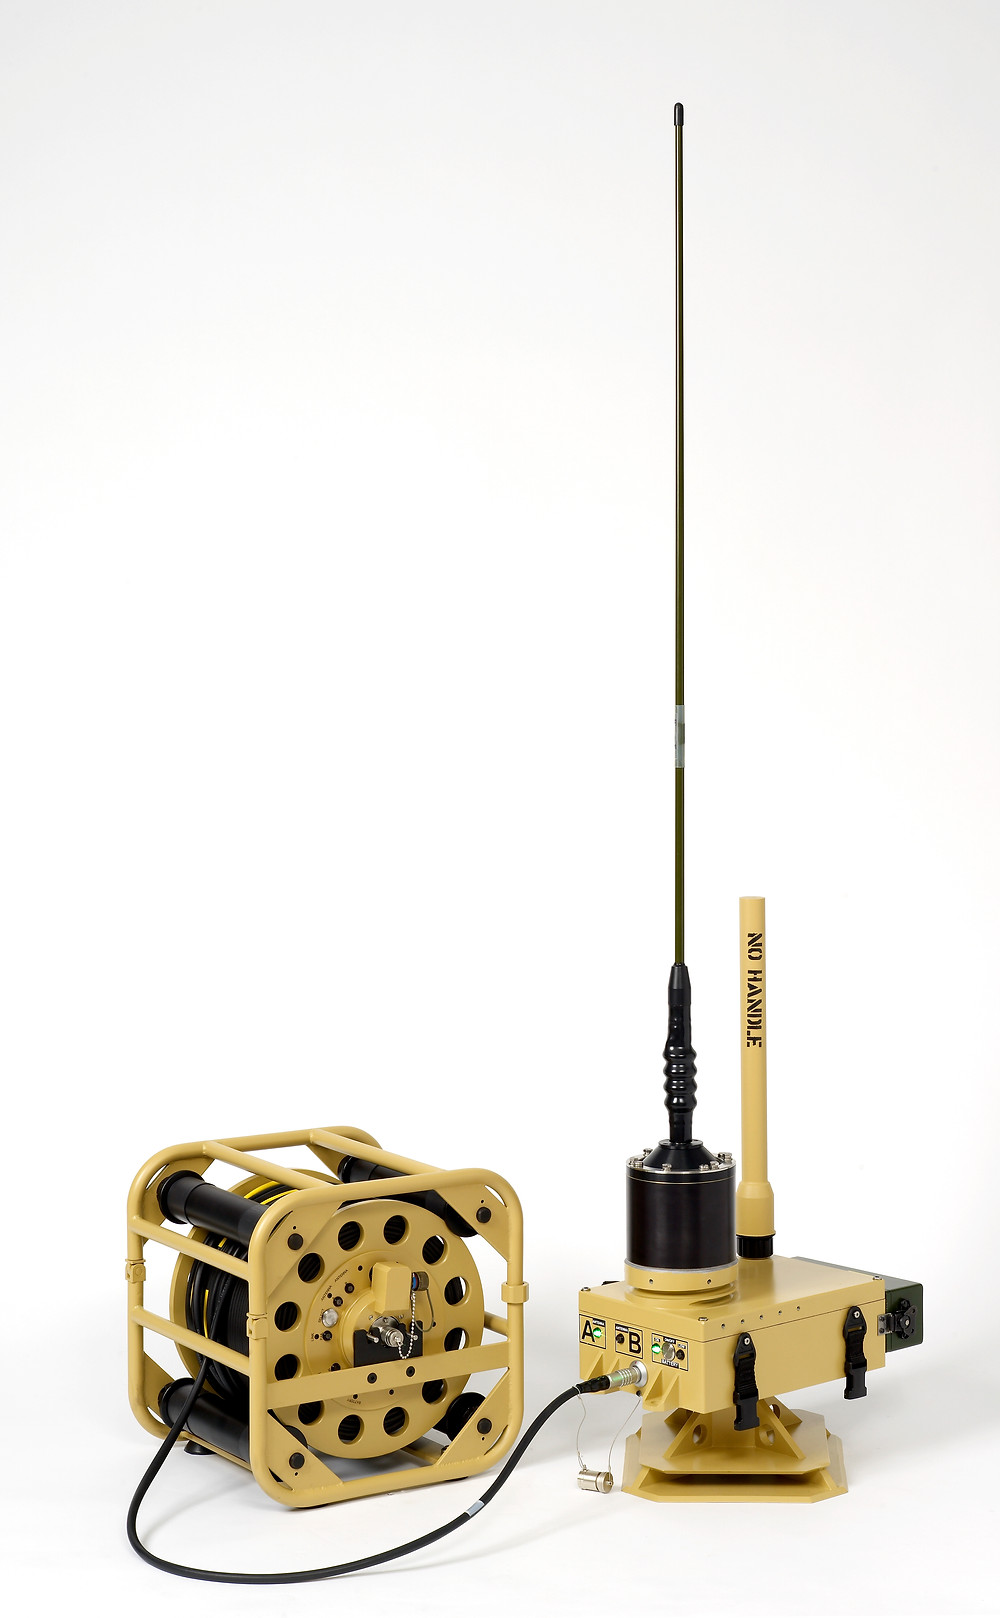 PPM Systems to showcase RF over fibre at DSEI